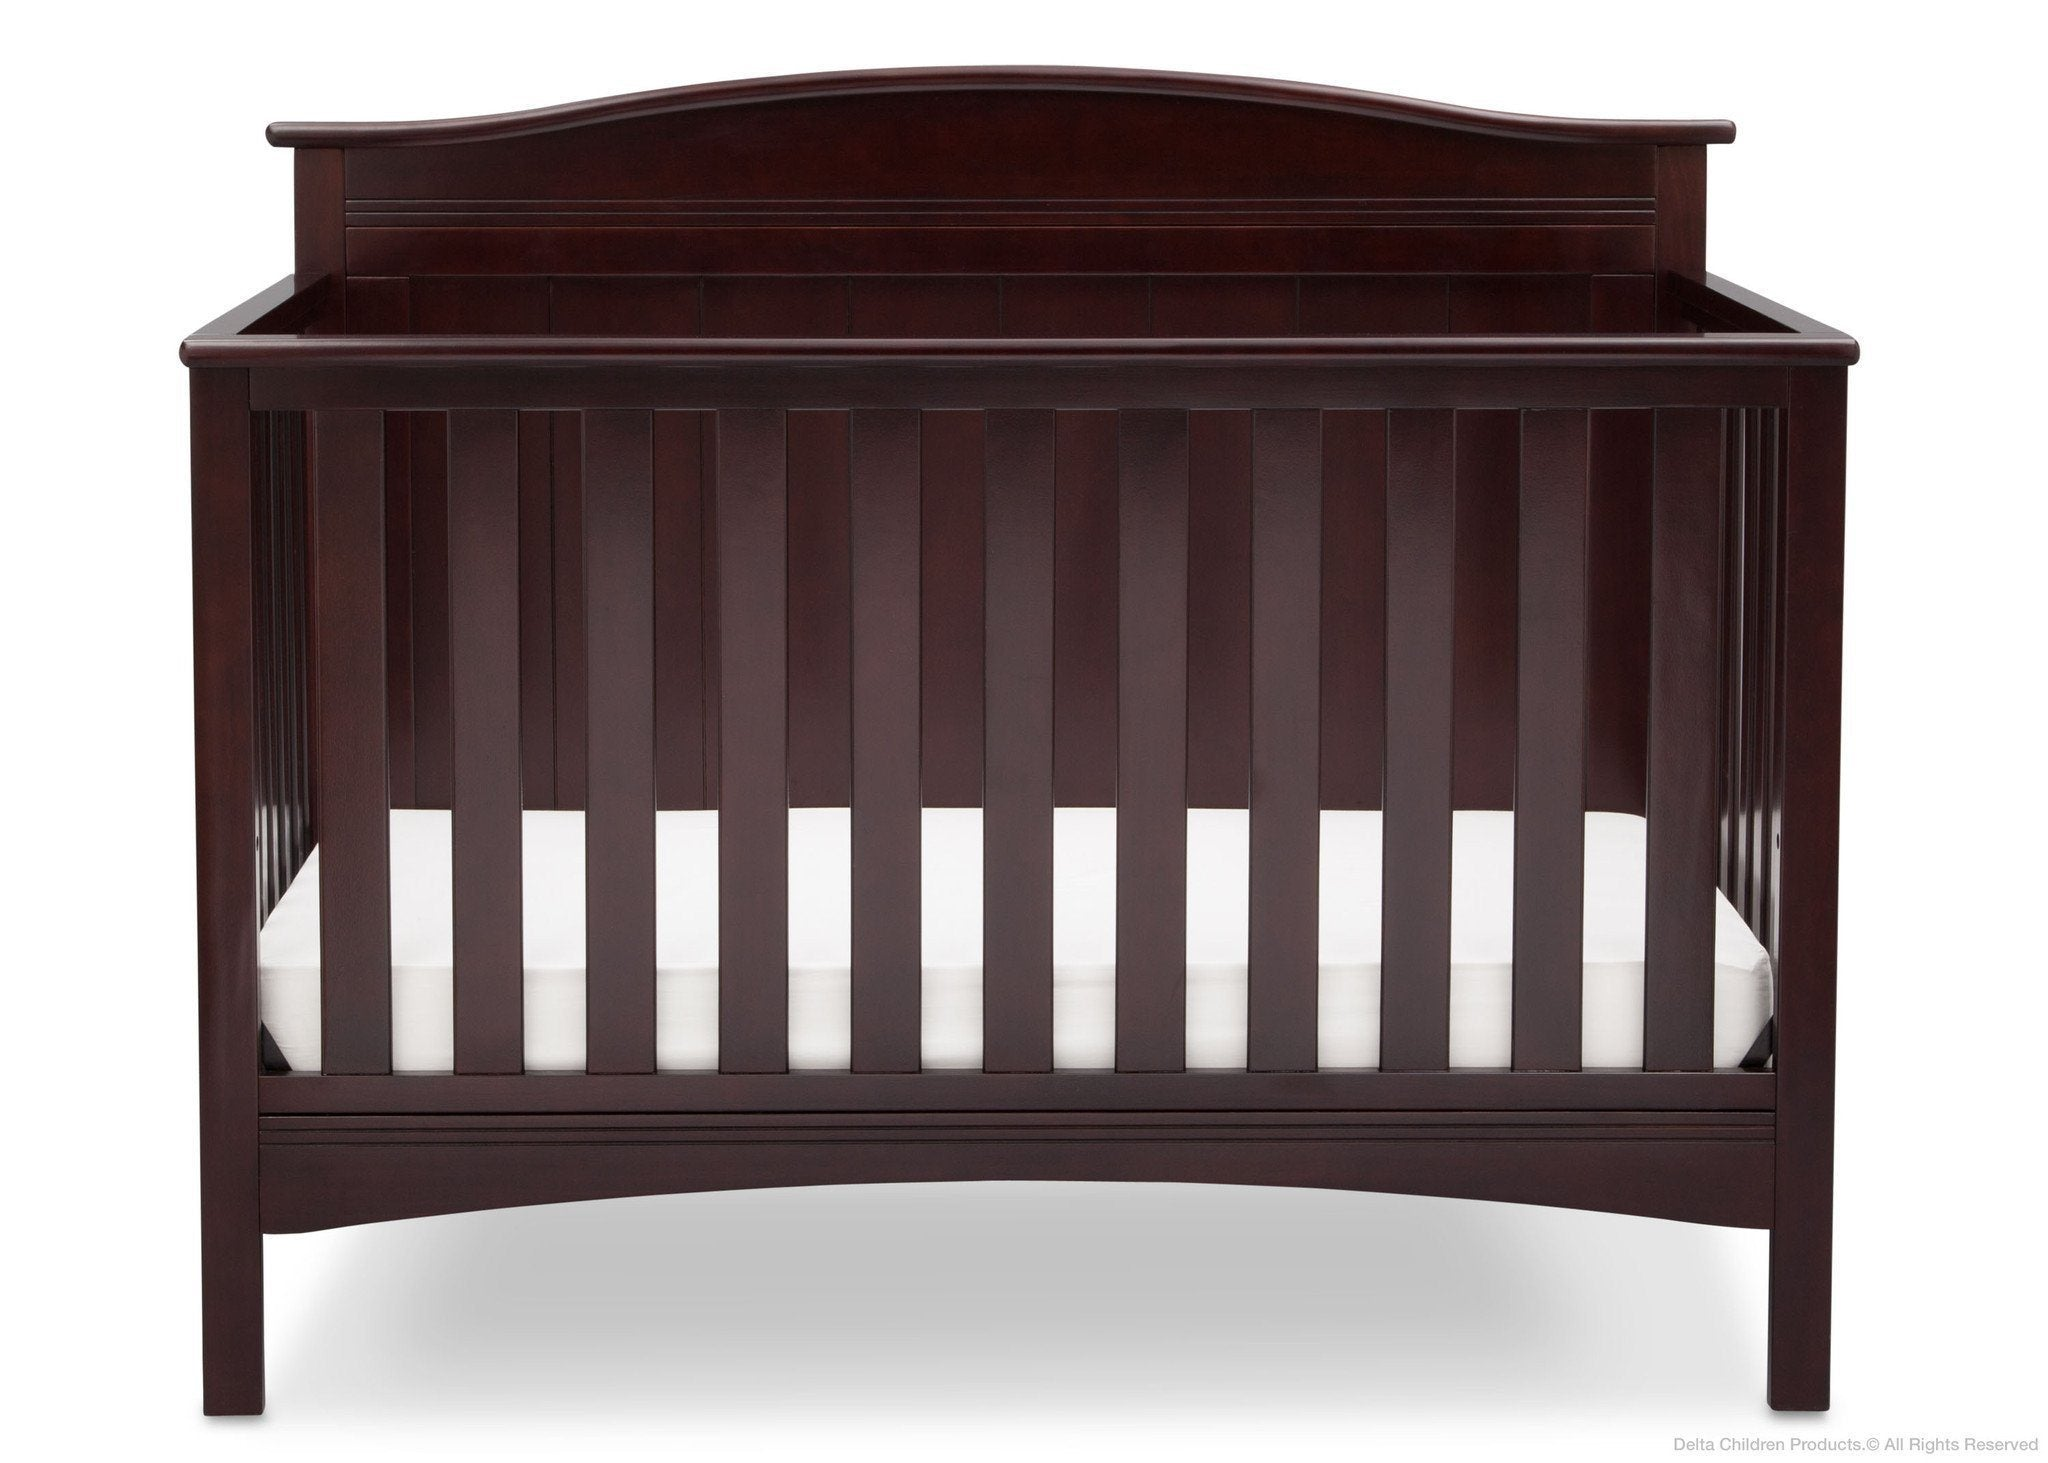 Delta Children Dark Chocolate (207) Bennett 4-in-1 Crib Front View c2c